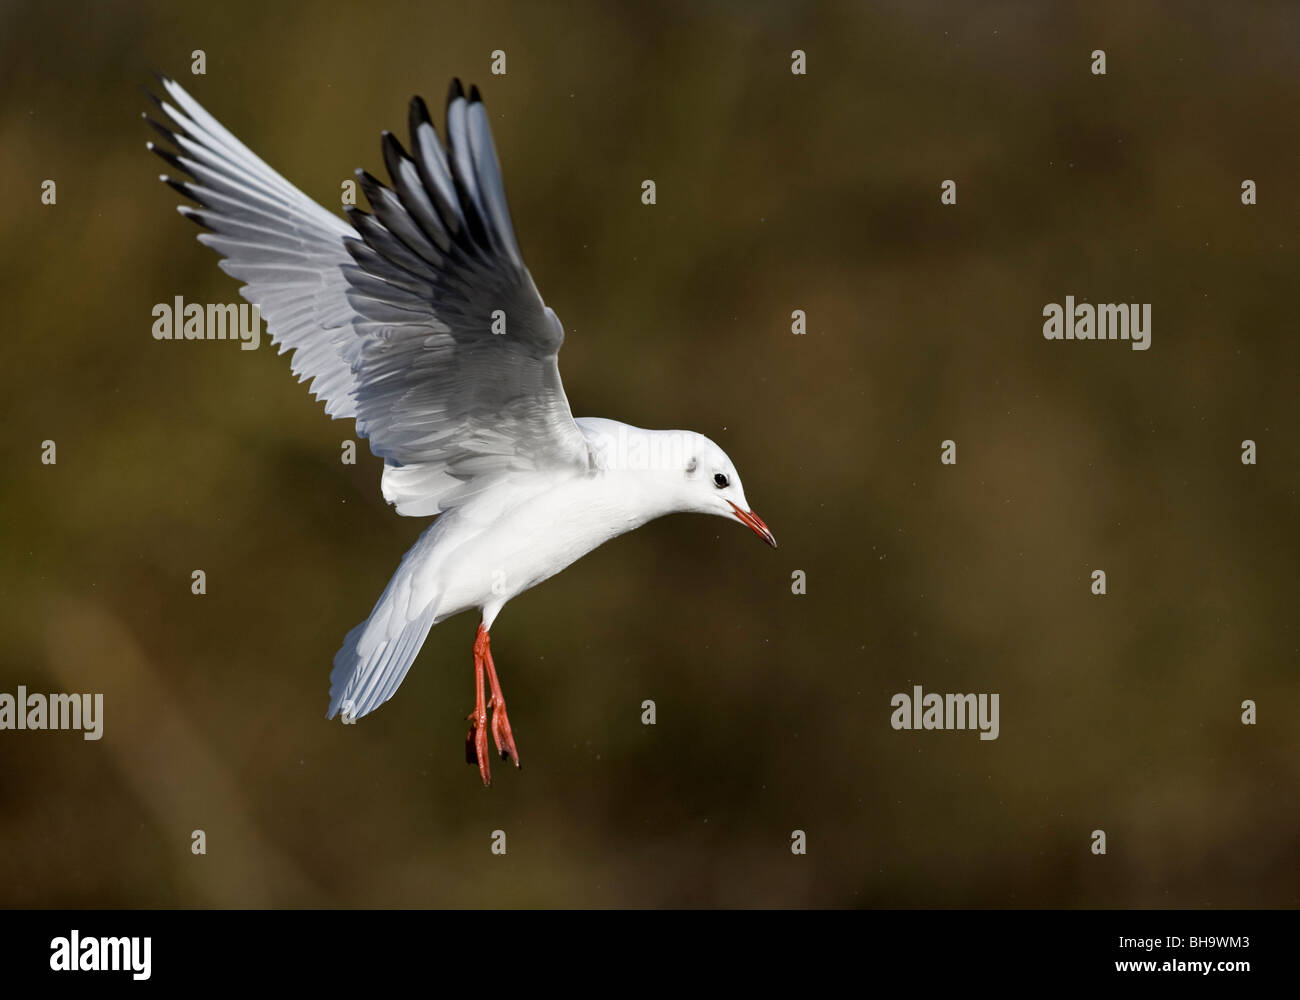 Black-headed Gull with winter plumage - Stock Image